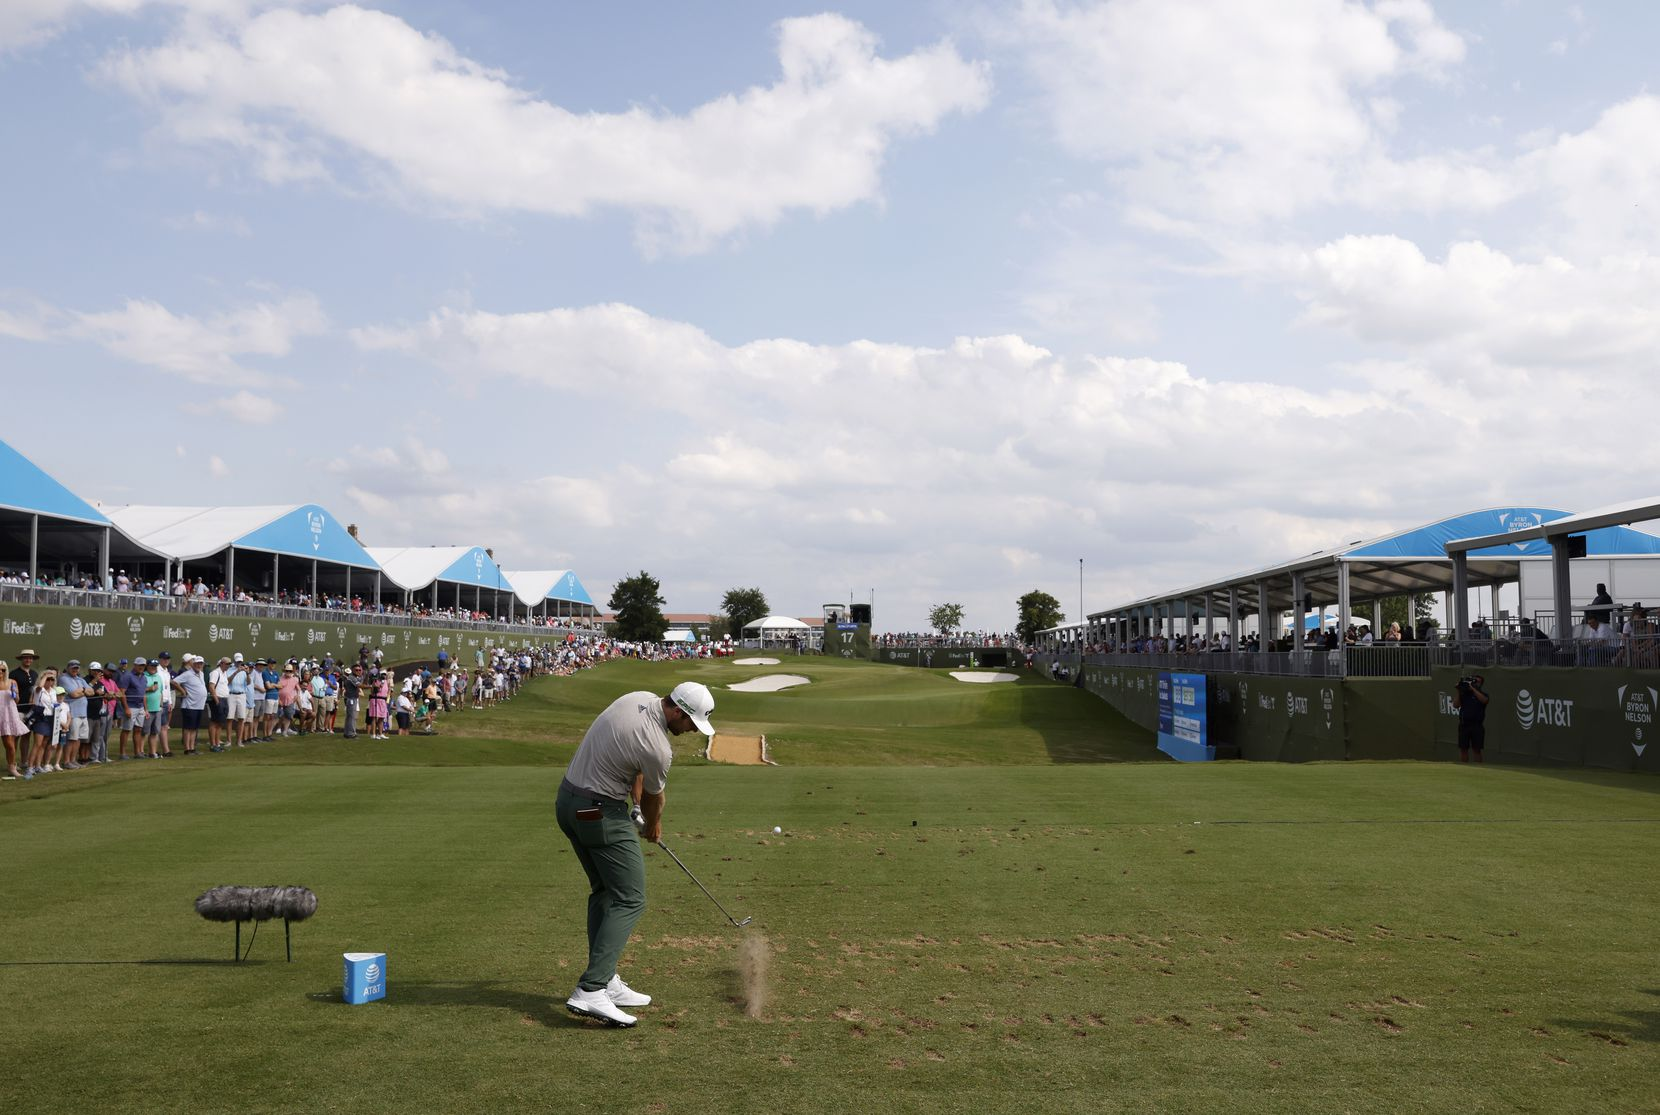 Sam Burns tees off on the 17th hole during round 3 of the AT&T Byron Nelson  at TPC Craig Ranch on Saturday, May 15, 2021 in McKinney, Texas. Burns finished the day in the lead with a -20. (Vernon Bryant/The Dallas Morning News)